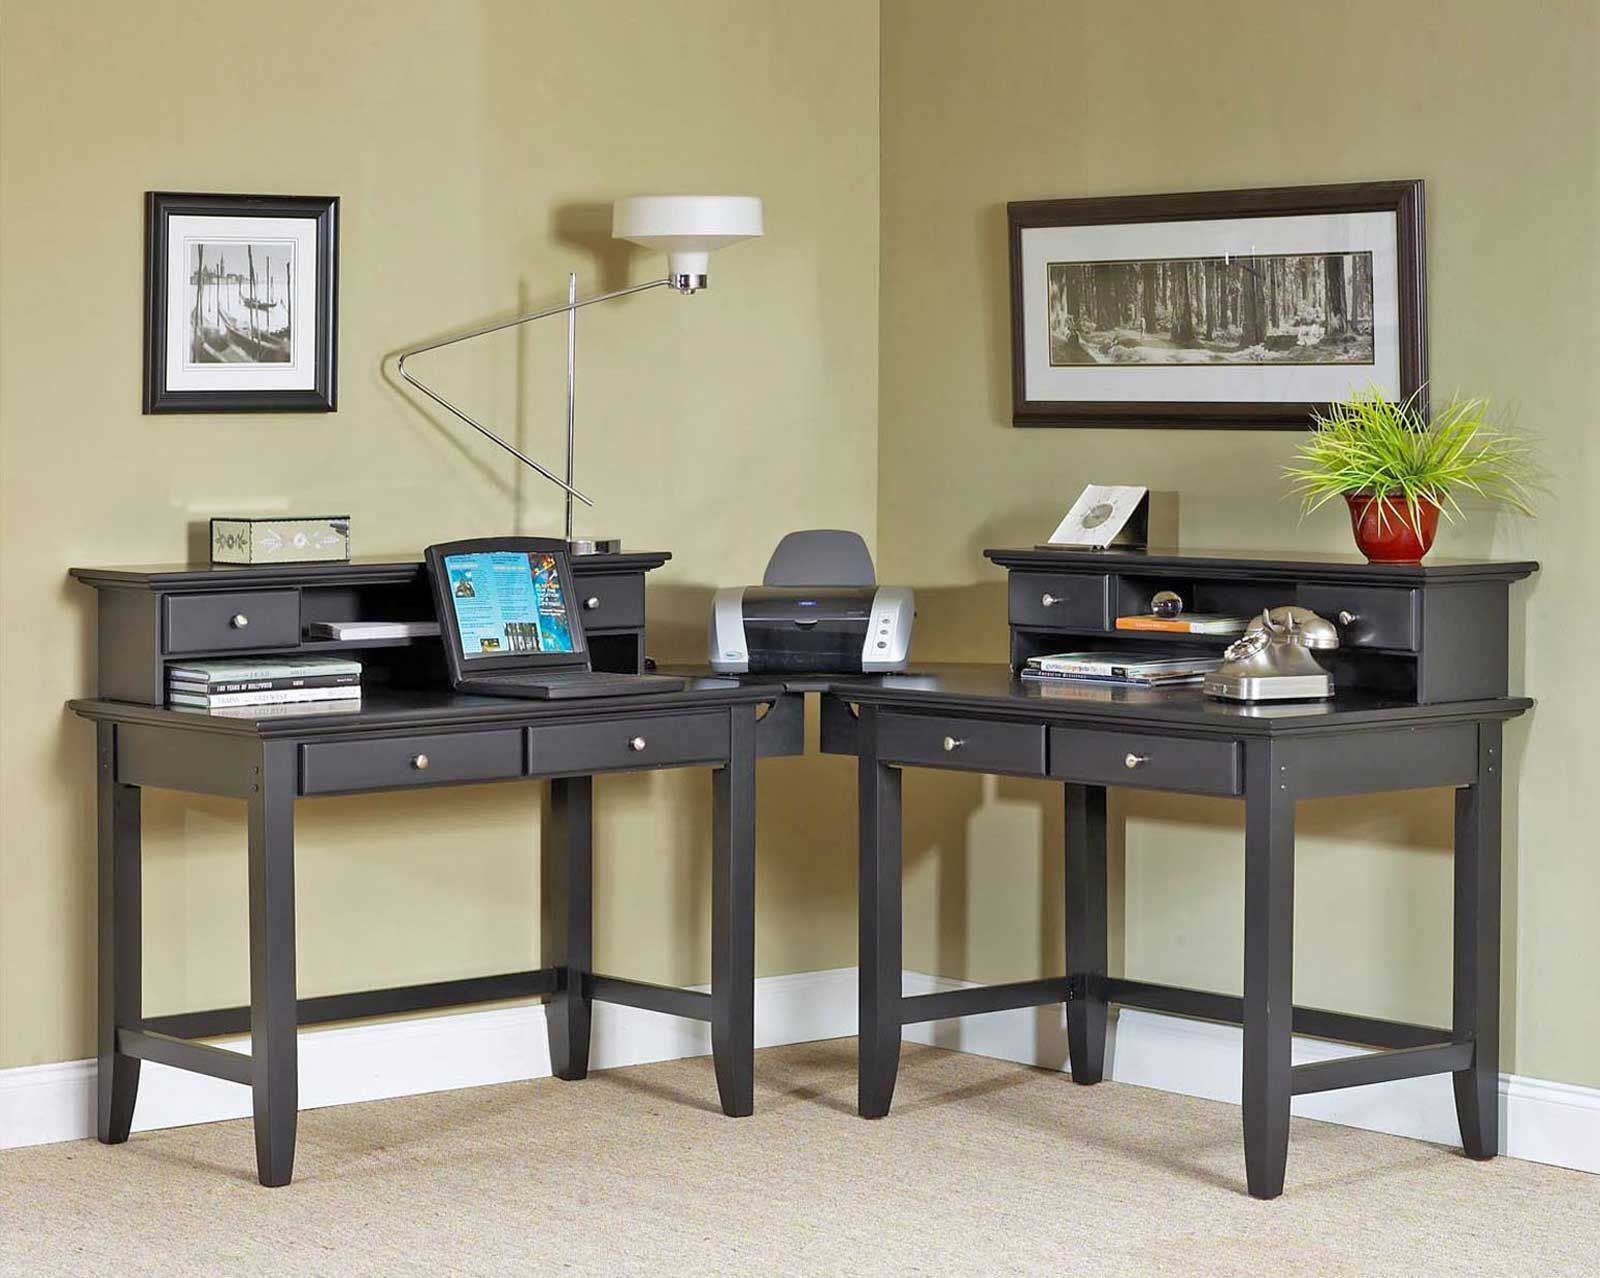 furniture for computers at home. unique 2 computer desk home office bedford corner desks for 41 on working room furniture computers at e